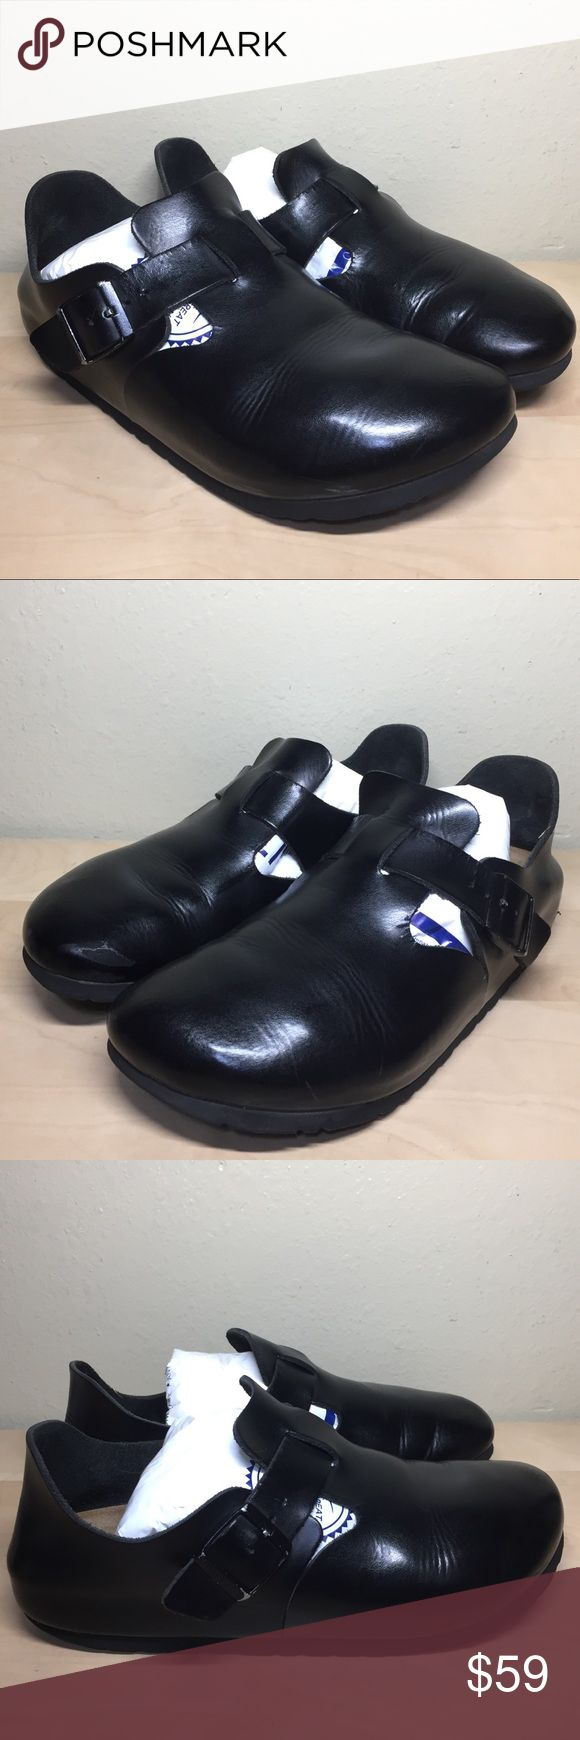 Birkenstock London Black Leather London Clogs Birkenstock Black Women's Leather London Slip-On Clog Size EU 40 US Size 9  Womens Us 9 Men's.     Us 7  These shoes are ore owned , the shoes have some wear and marks, the shoes have been cleaned.  SEE PICTURES FOR MORE DETAILS Birkenstock Shoes Mules & Clogs